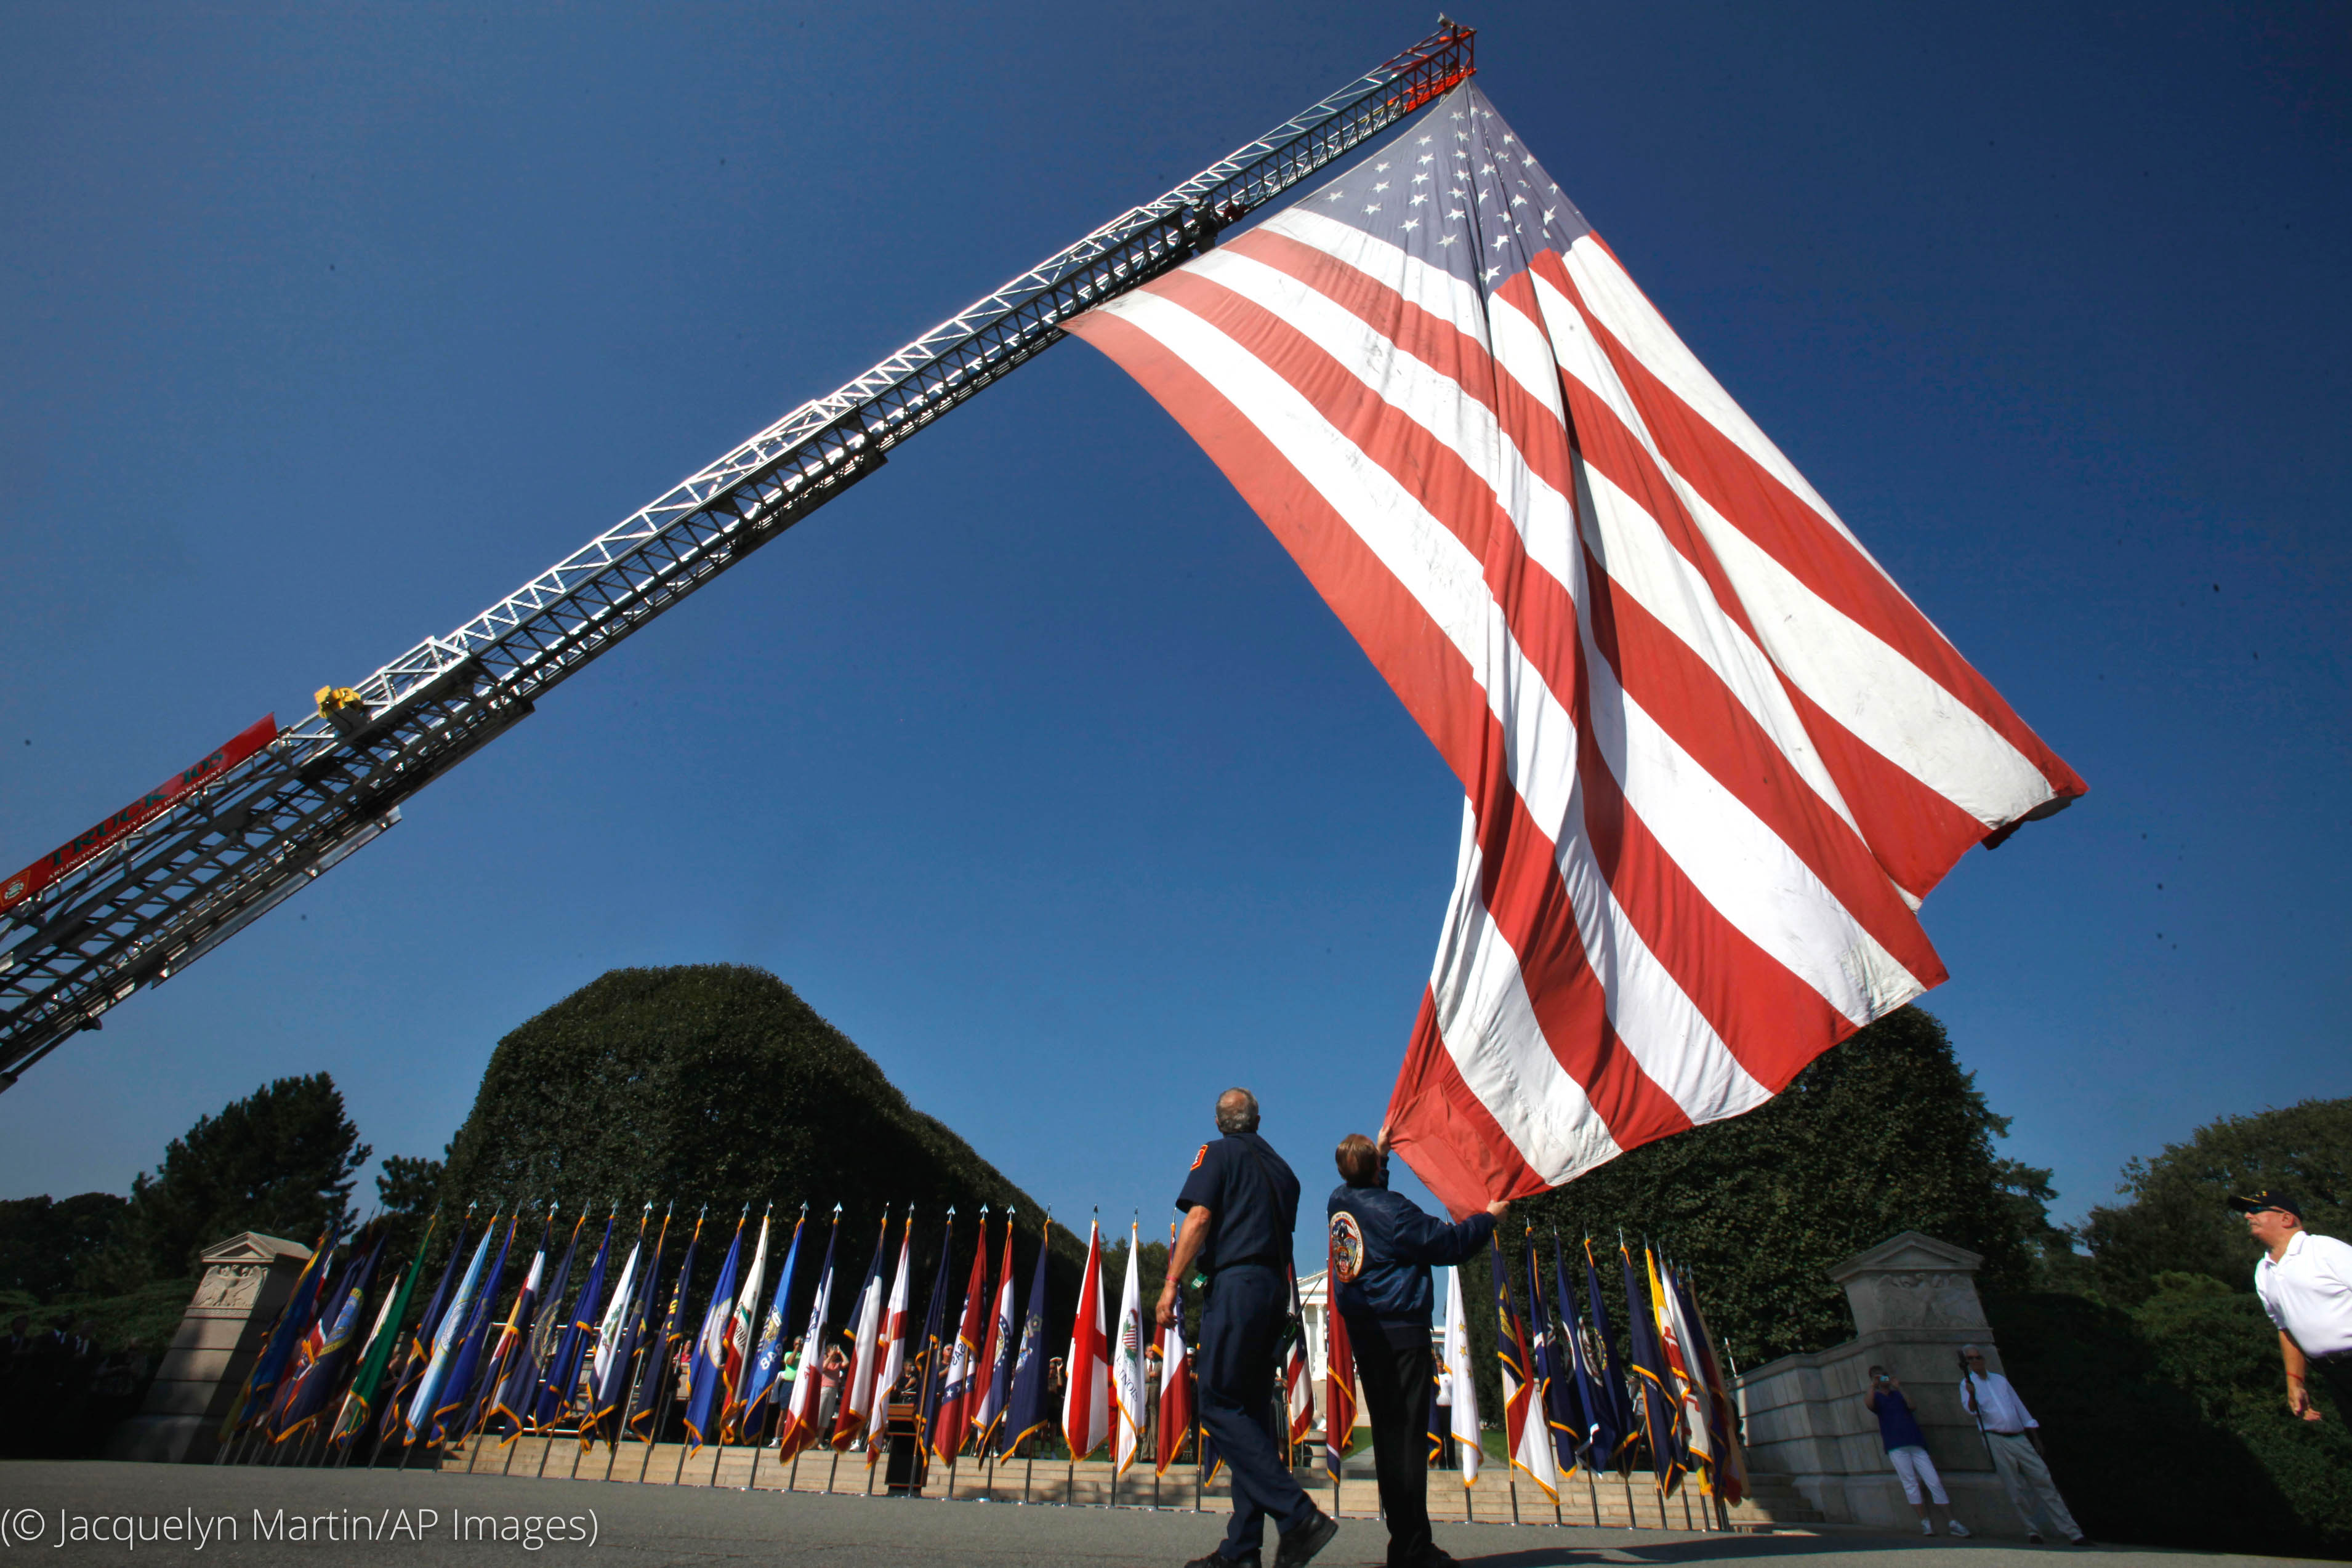 Uniformed person holding edge of large American flag being flown from fire truck ladder (© Jacquelyn Martin/AP Images)